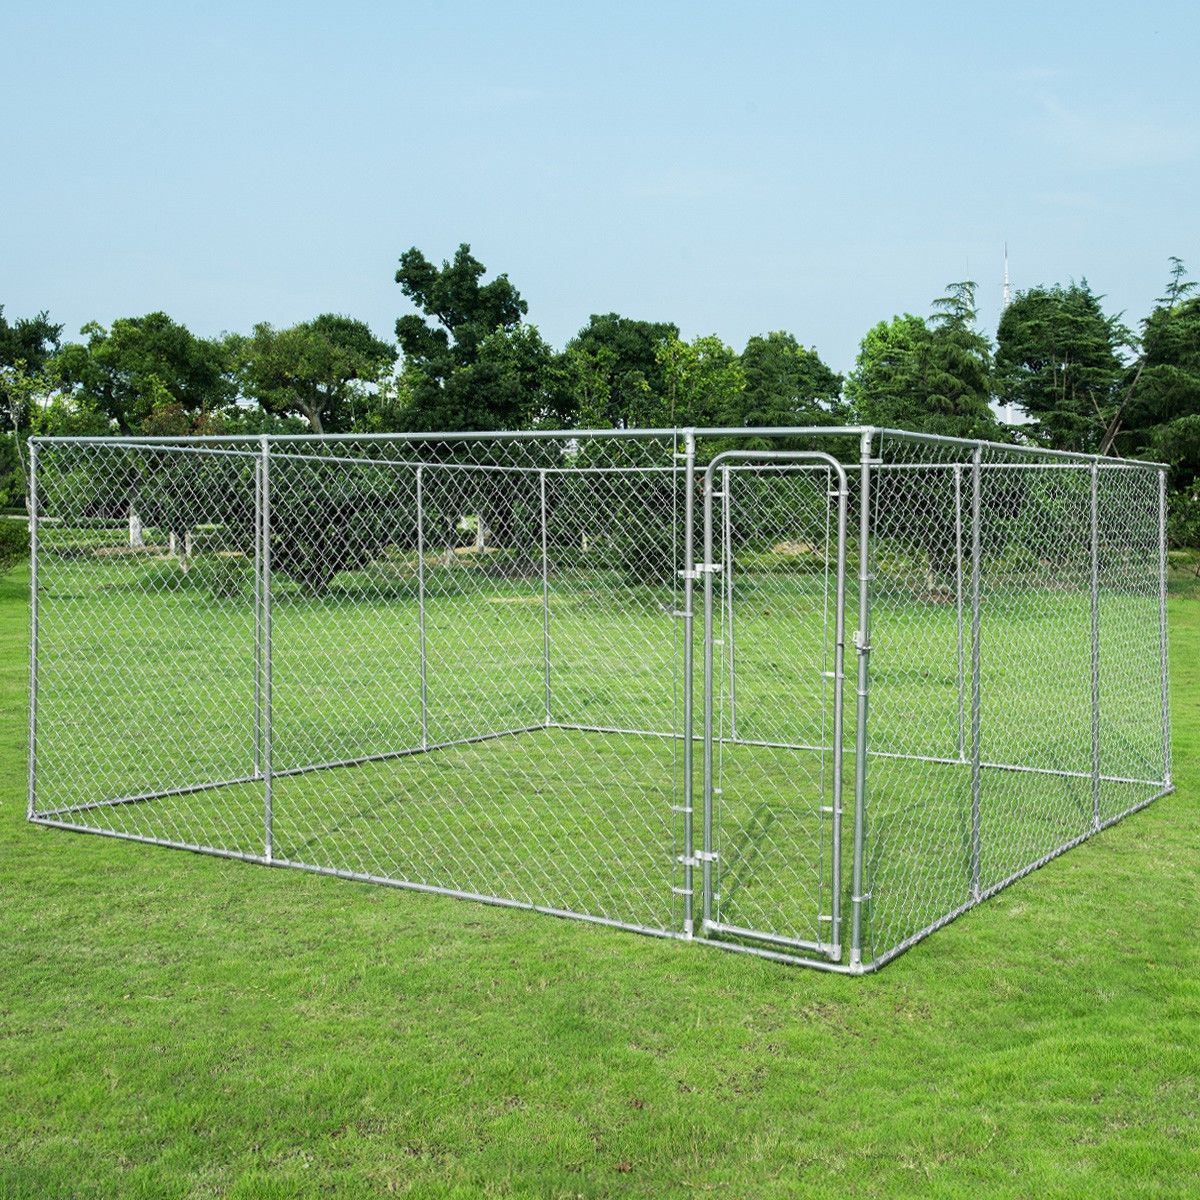 15 X 15 Large Pet Dog Run House Kennel Shade Cage Dog Kennel Outdoor Outdoor Dog Large Dog Cage